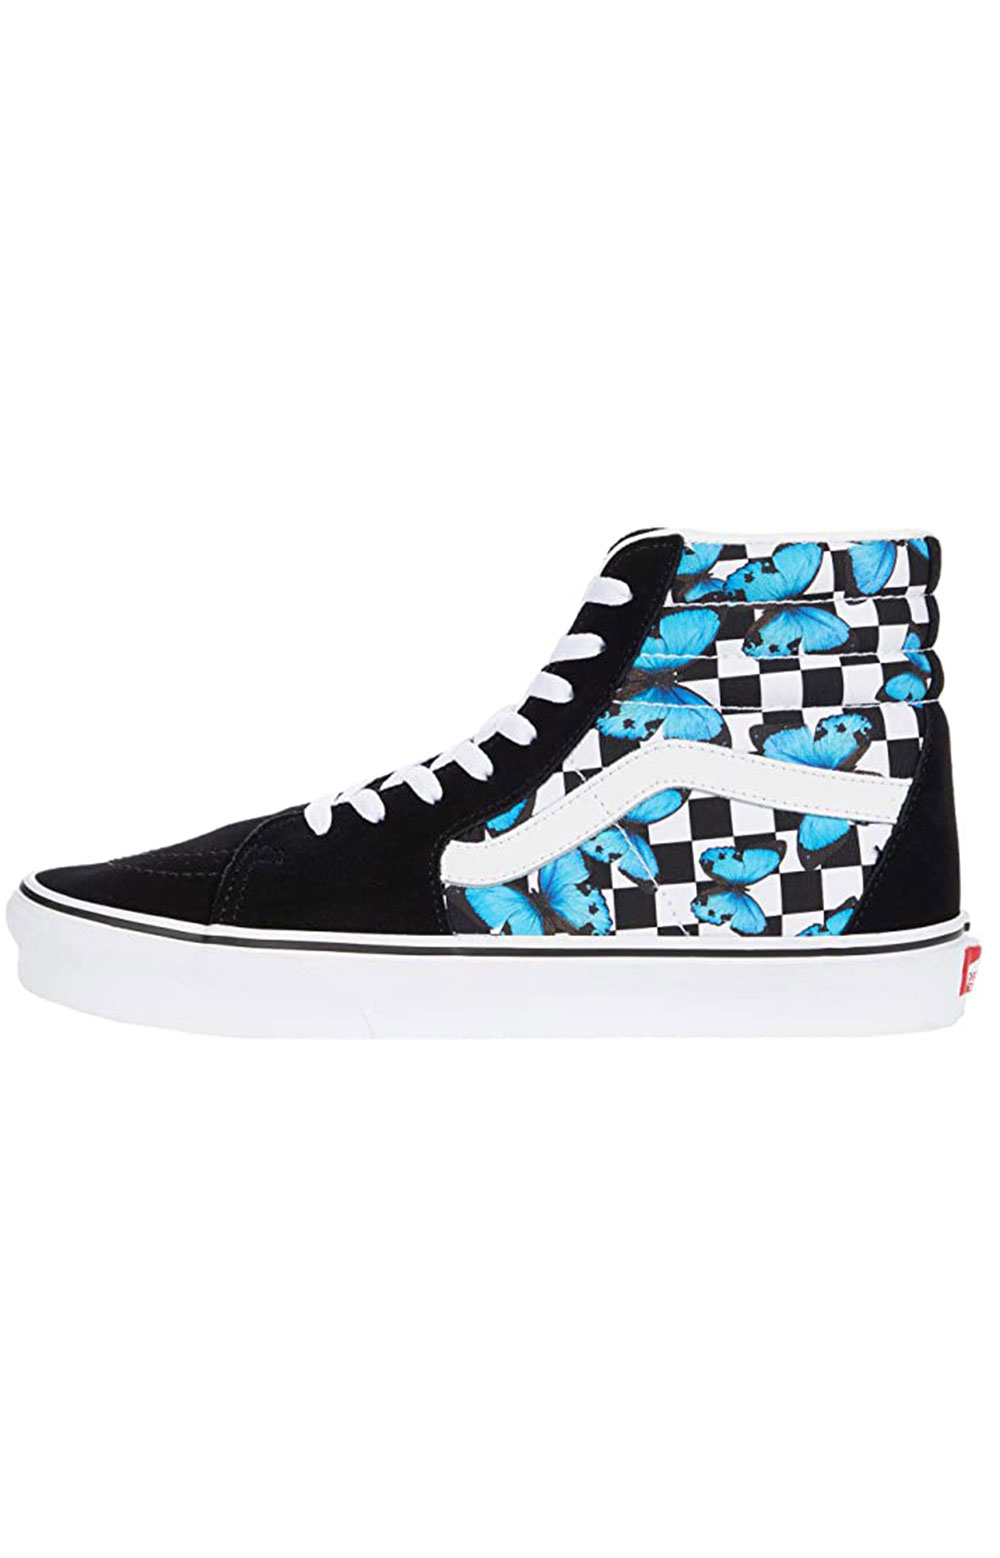 (HXV5KK) Butterfly Checkerboard Sk8-Hi Shoes  3